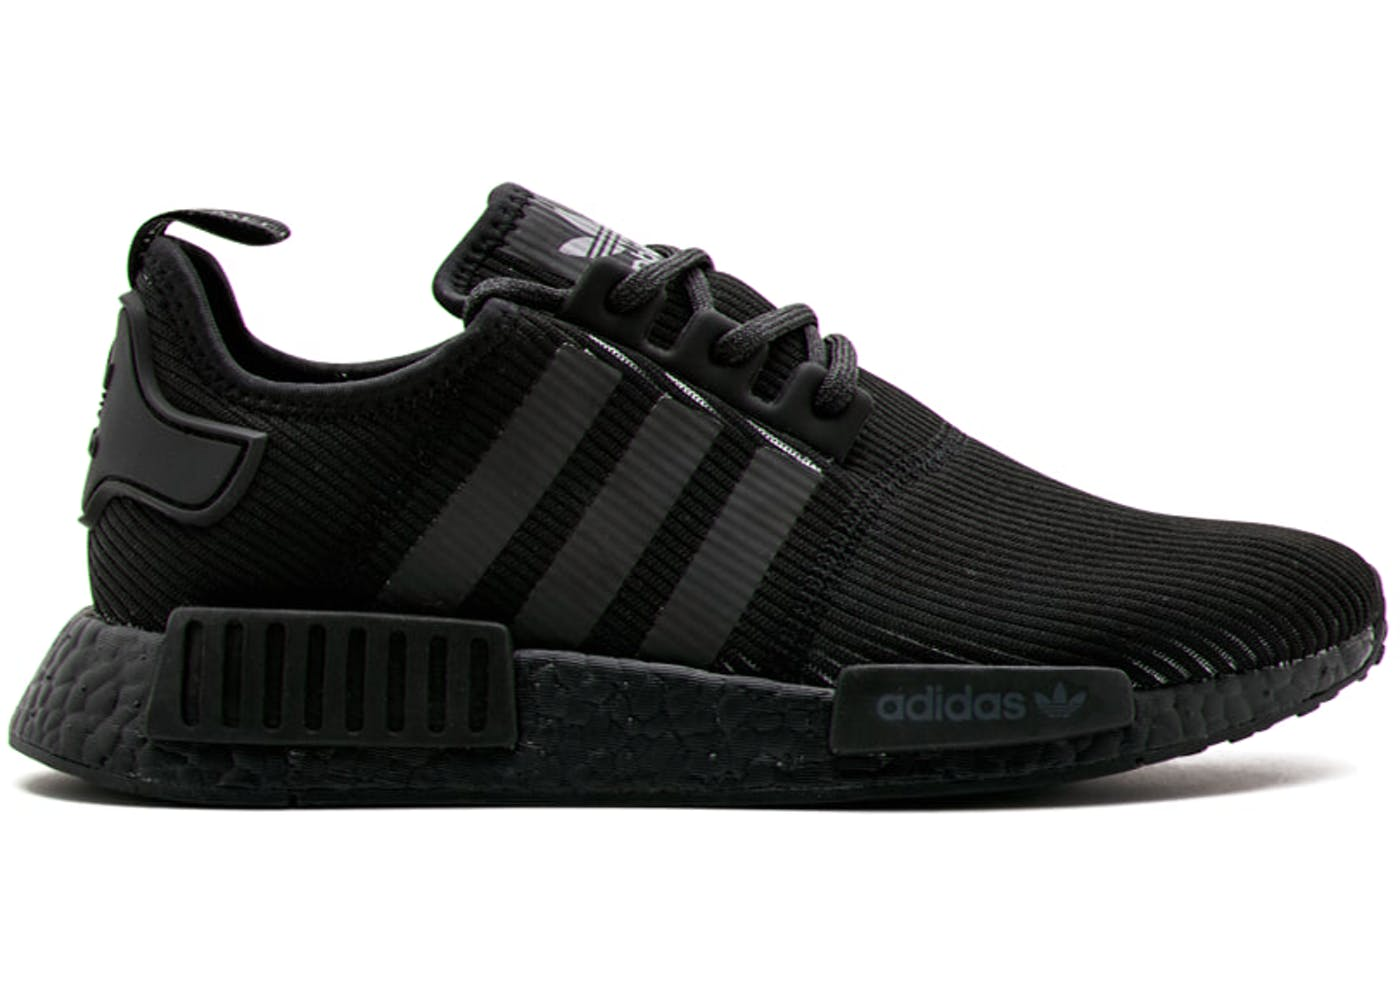 adidas nmd triple black r1 kenmore. Black Bedroom Furniture Sets. Home Design Ideas